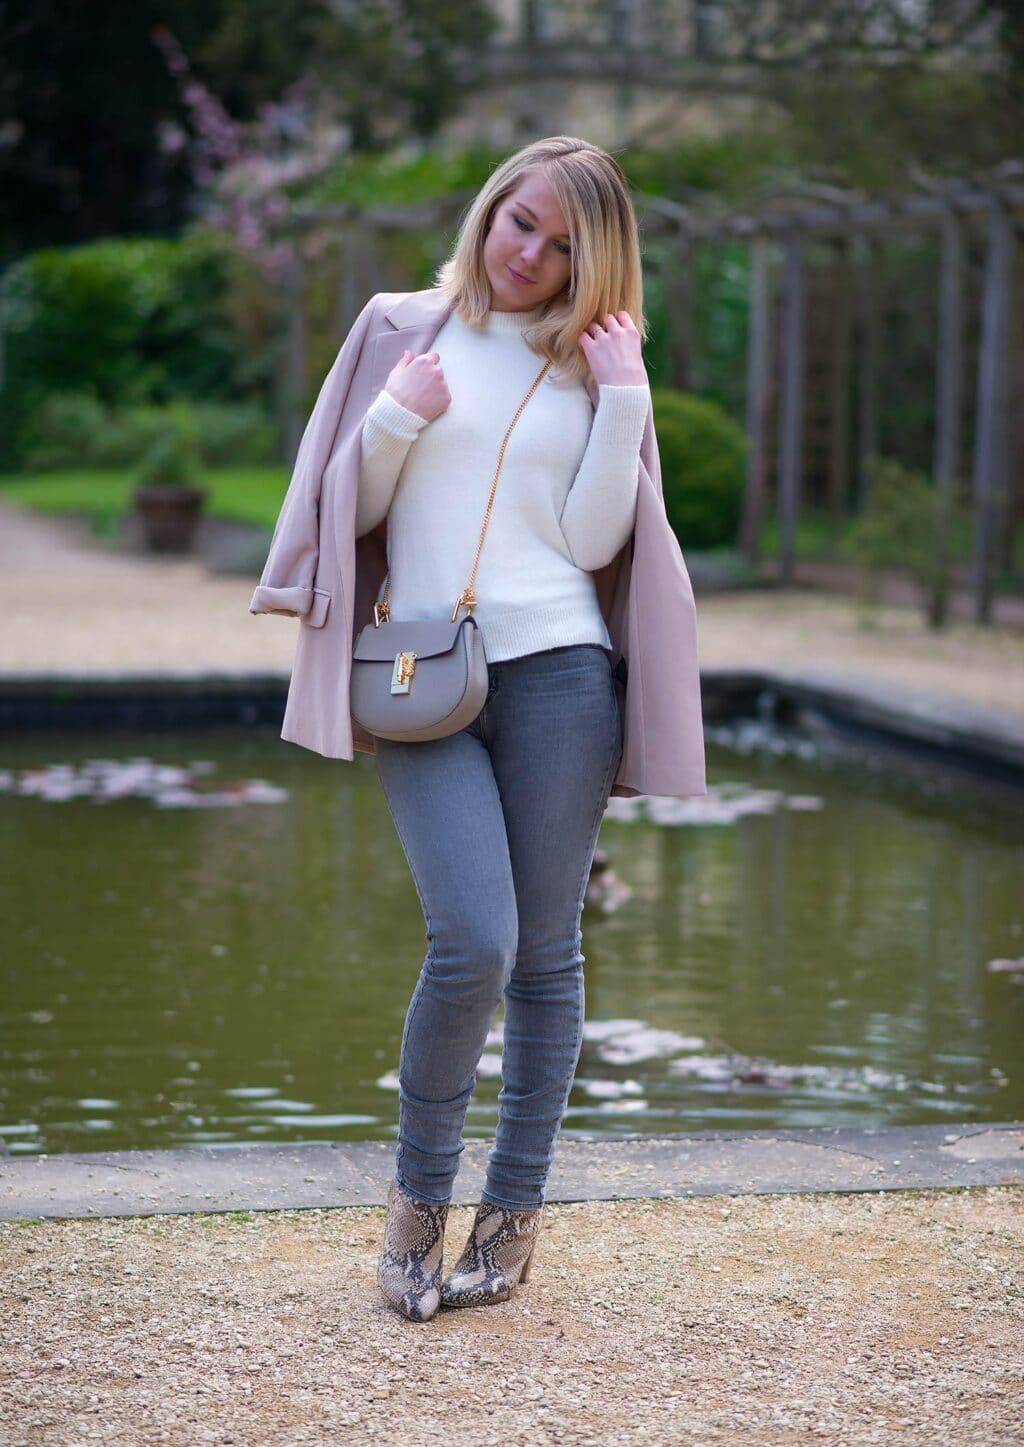 lorna-burford-uk-fashion-blogger-blush-pink-jacket